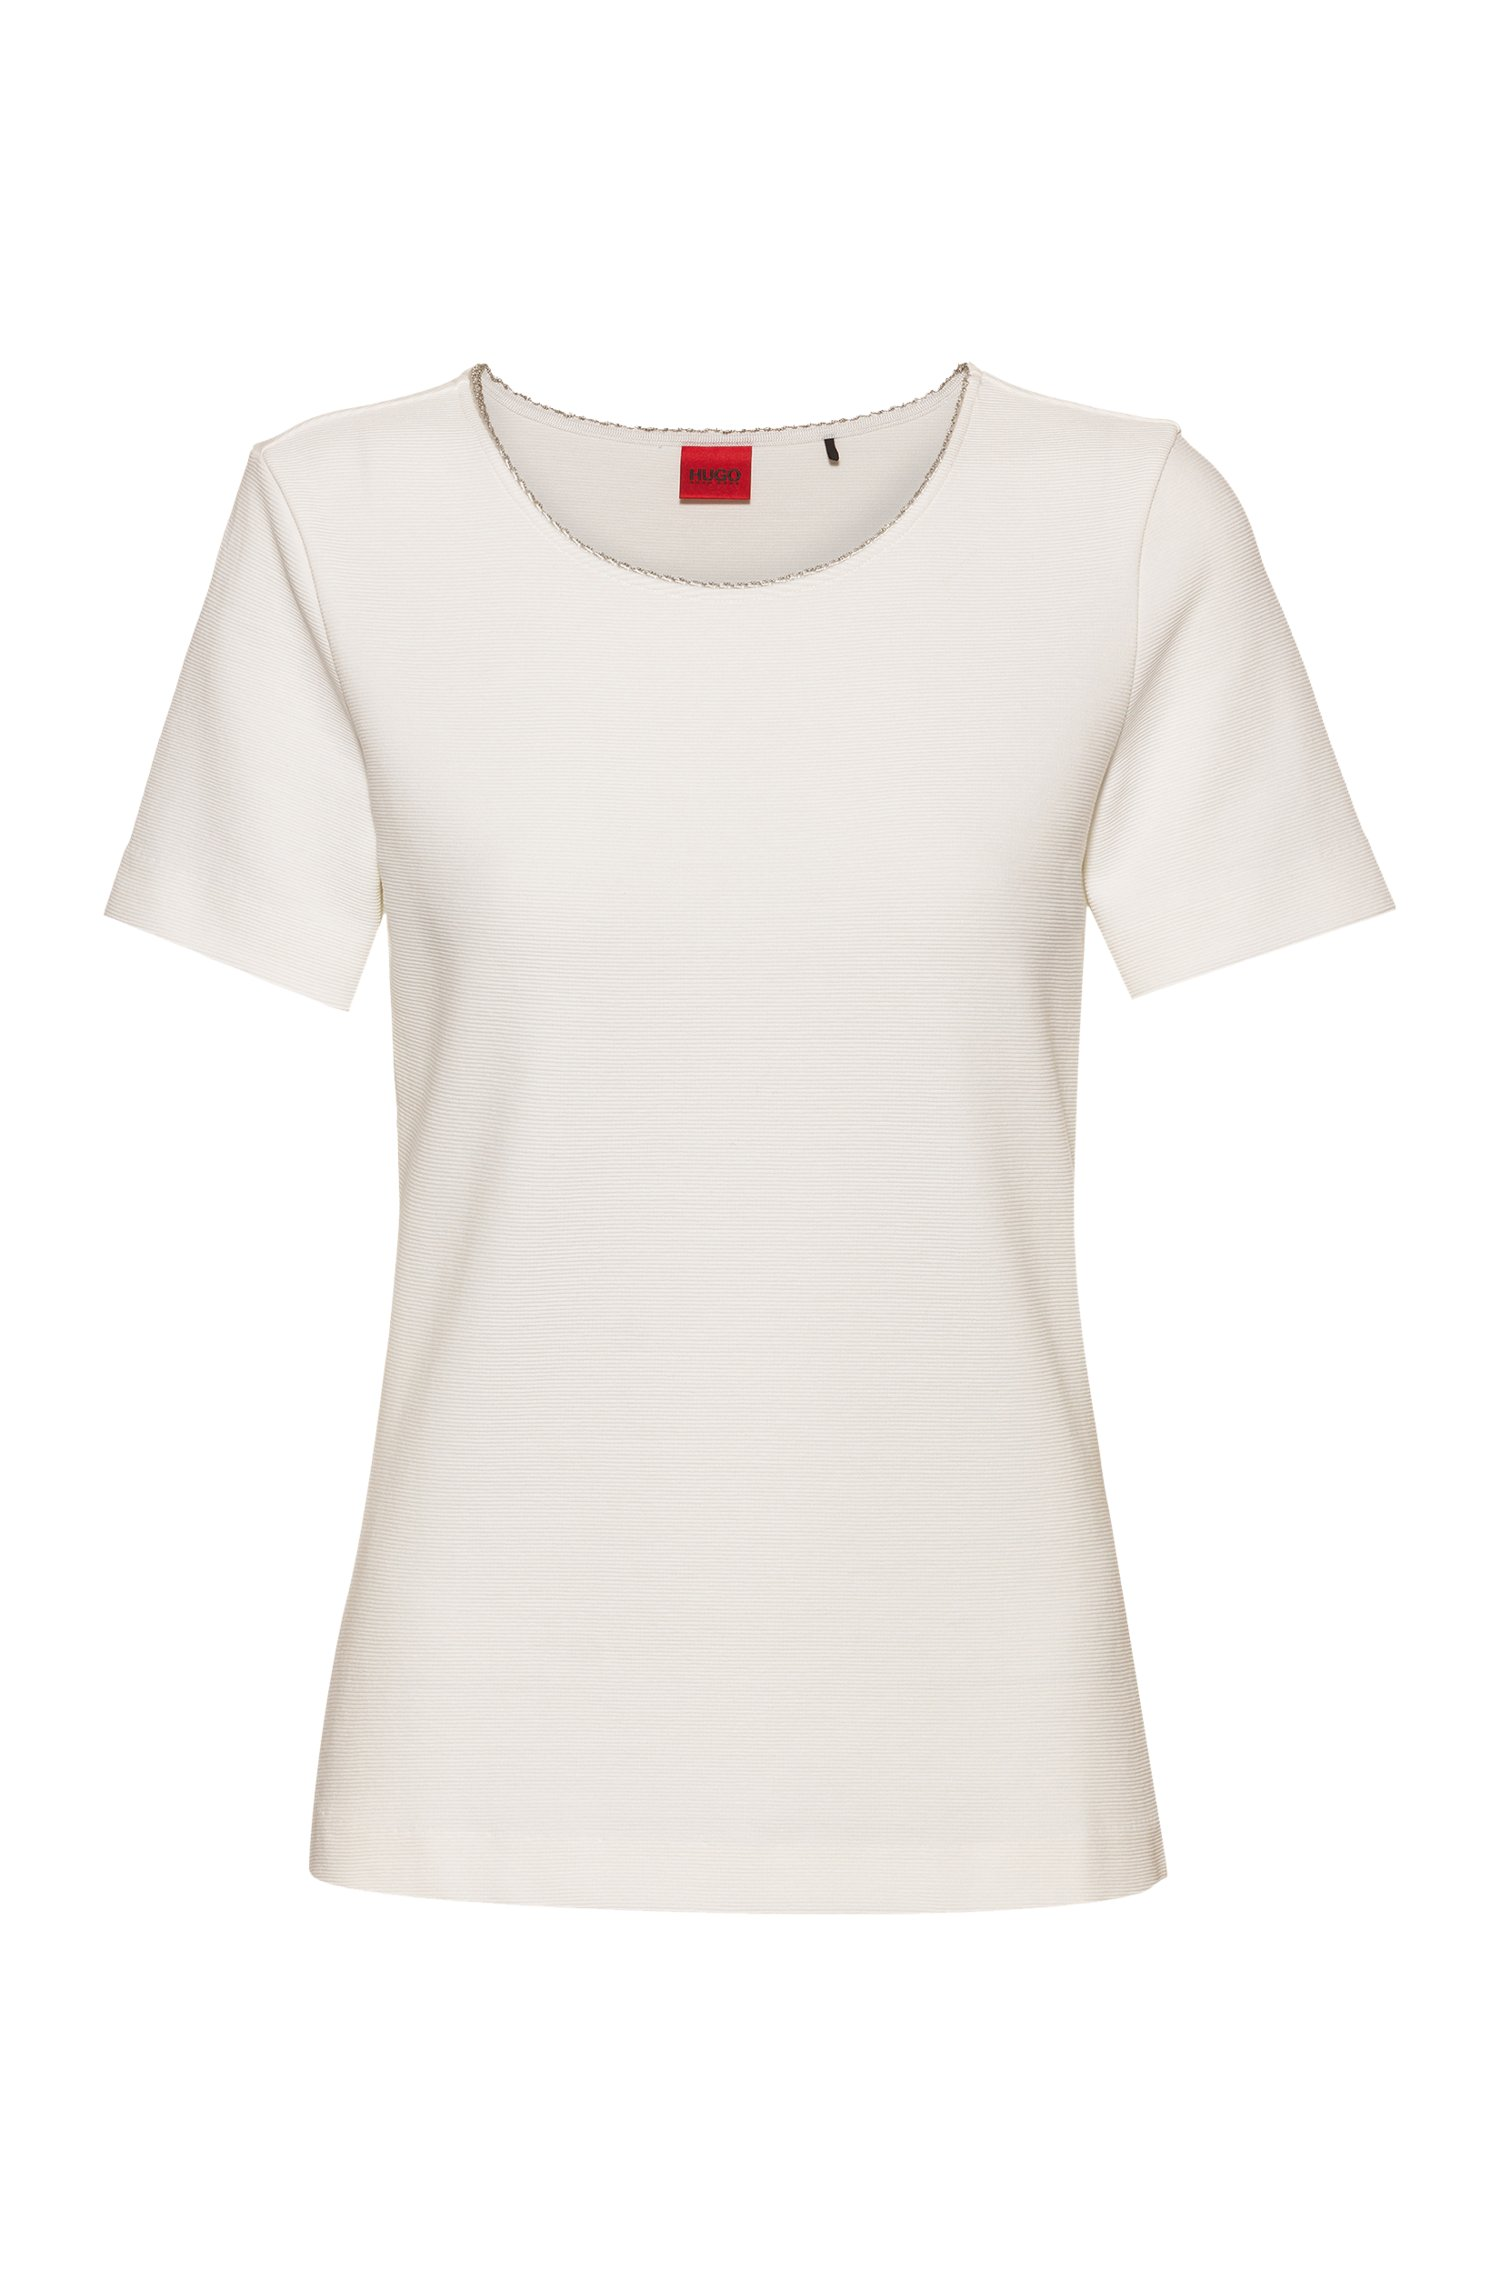 Scoop-neck T-shirt in stretch jersey with metallic trim, White